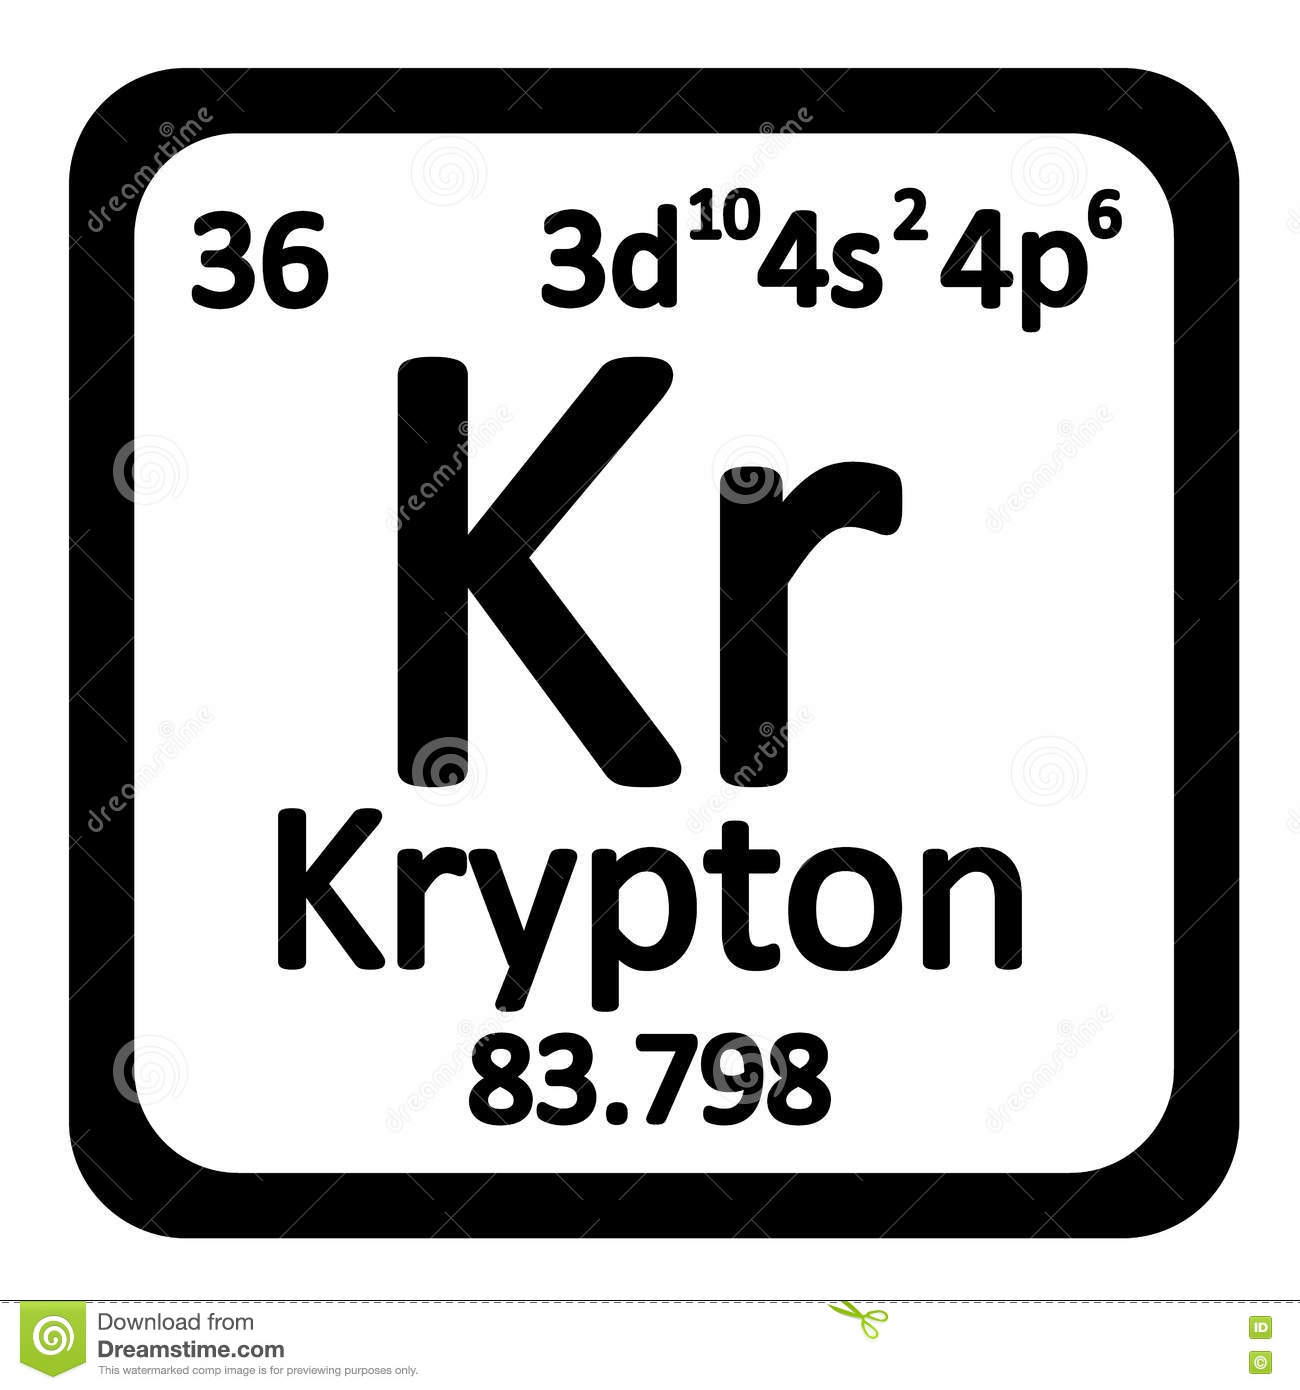 Periodic table element krypton icon stock illustration periodic table element krypton icon urtaz Choice Image